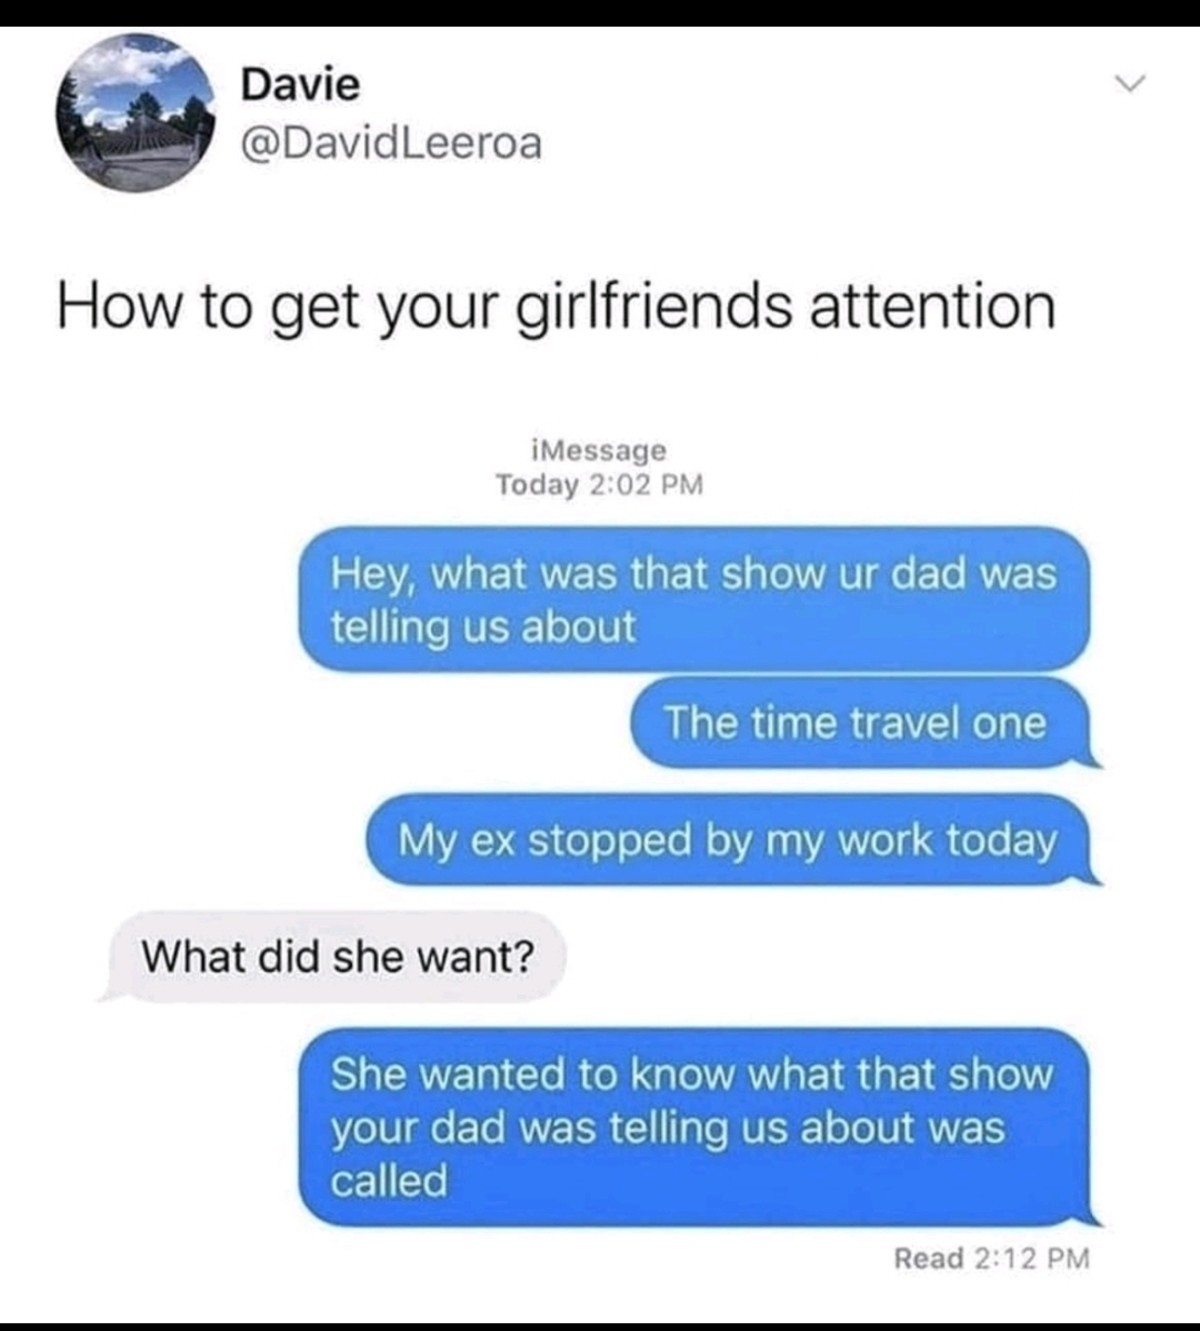 Time Travel. .. Alternatively, you can just give people a little time to answer. The whole conversation apparently only took 10 minutes.